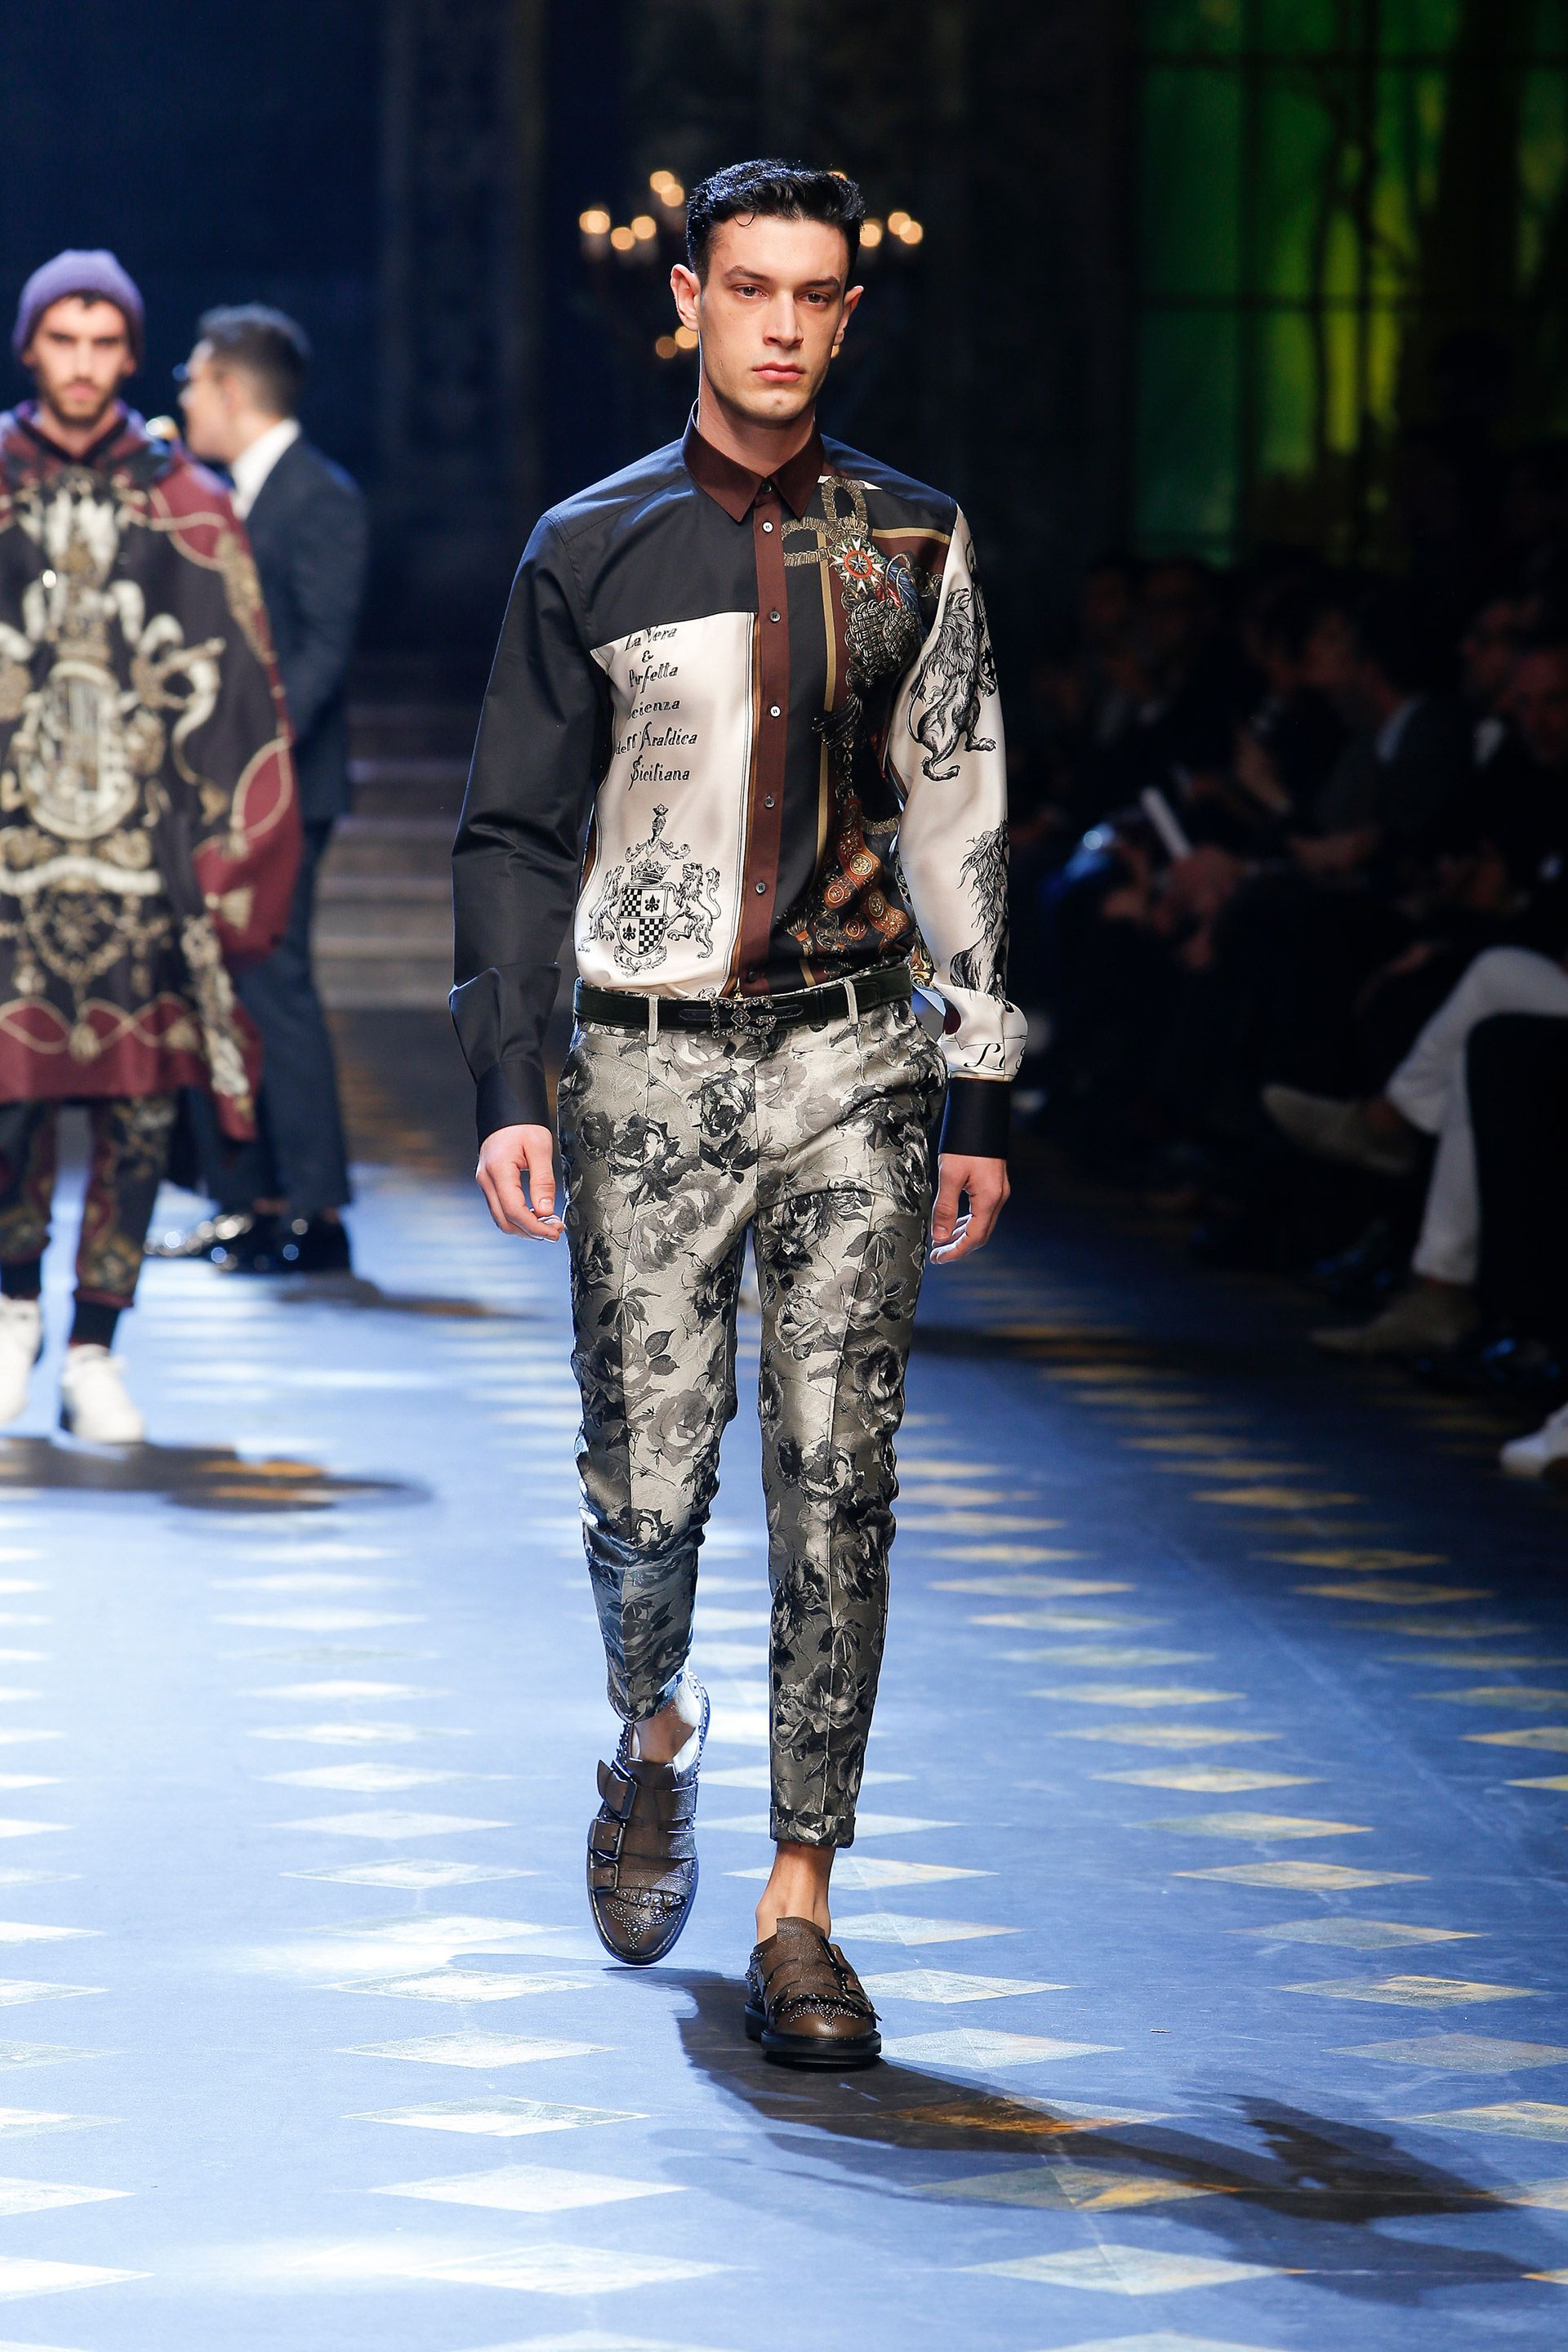 427b5ec82c60 Discover Videos and Pictures from the Catwalk of Dolce Gabbana Fall Winter  2017-18 Menswear Fashion Show on Dolcegabbana.com.